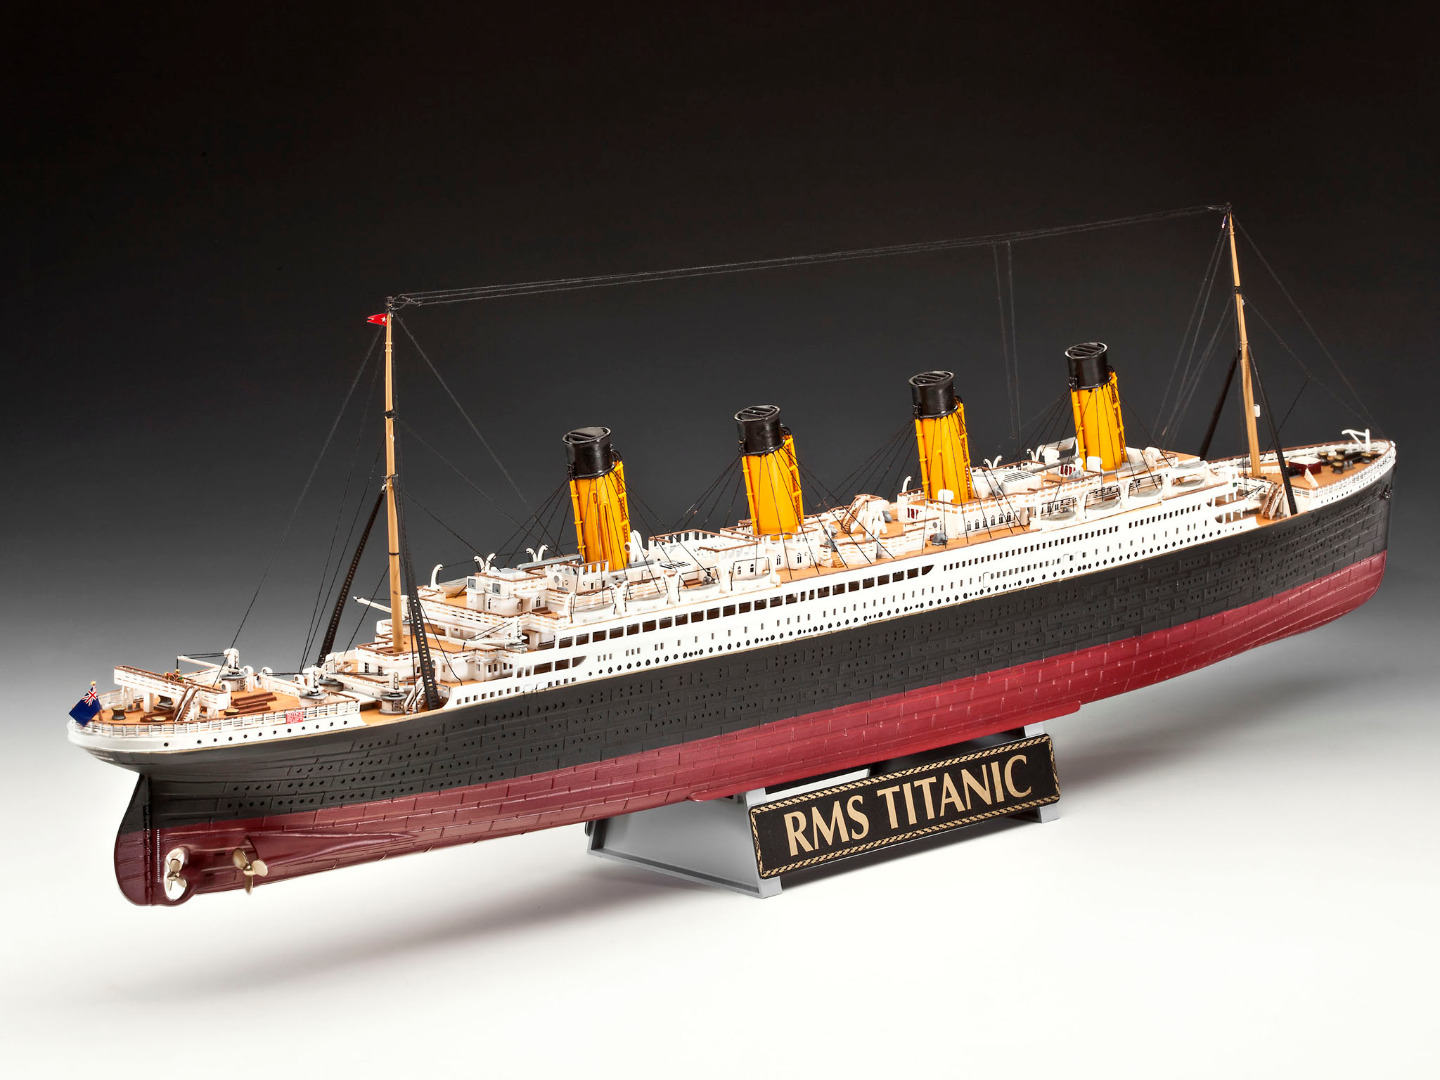 Revell Gift Set R.M.S. Titanic 100th Anniversary Edition Scale 1:400